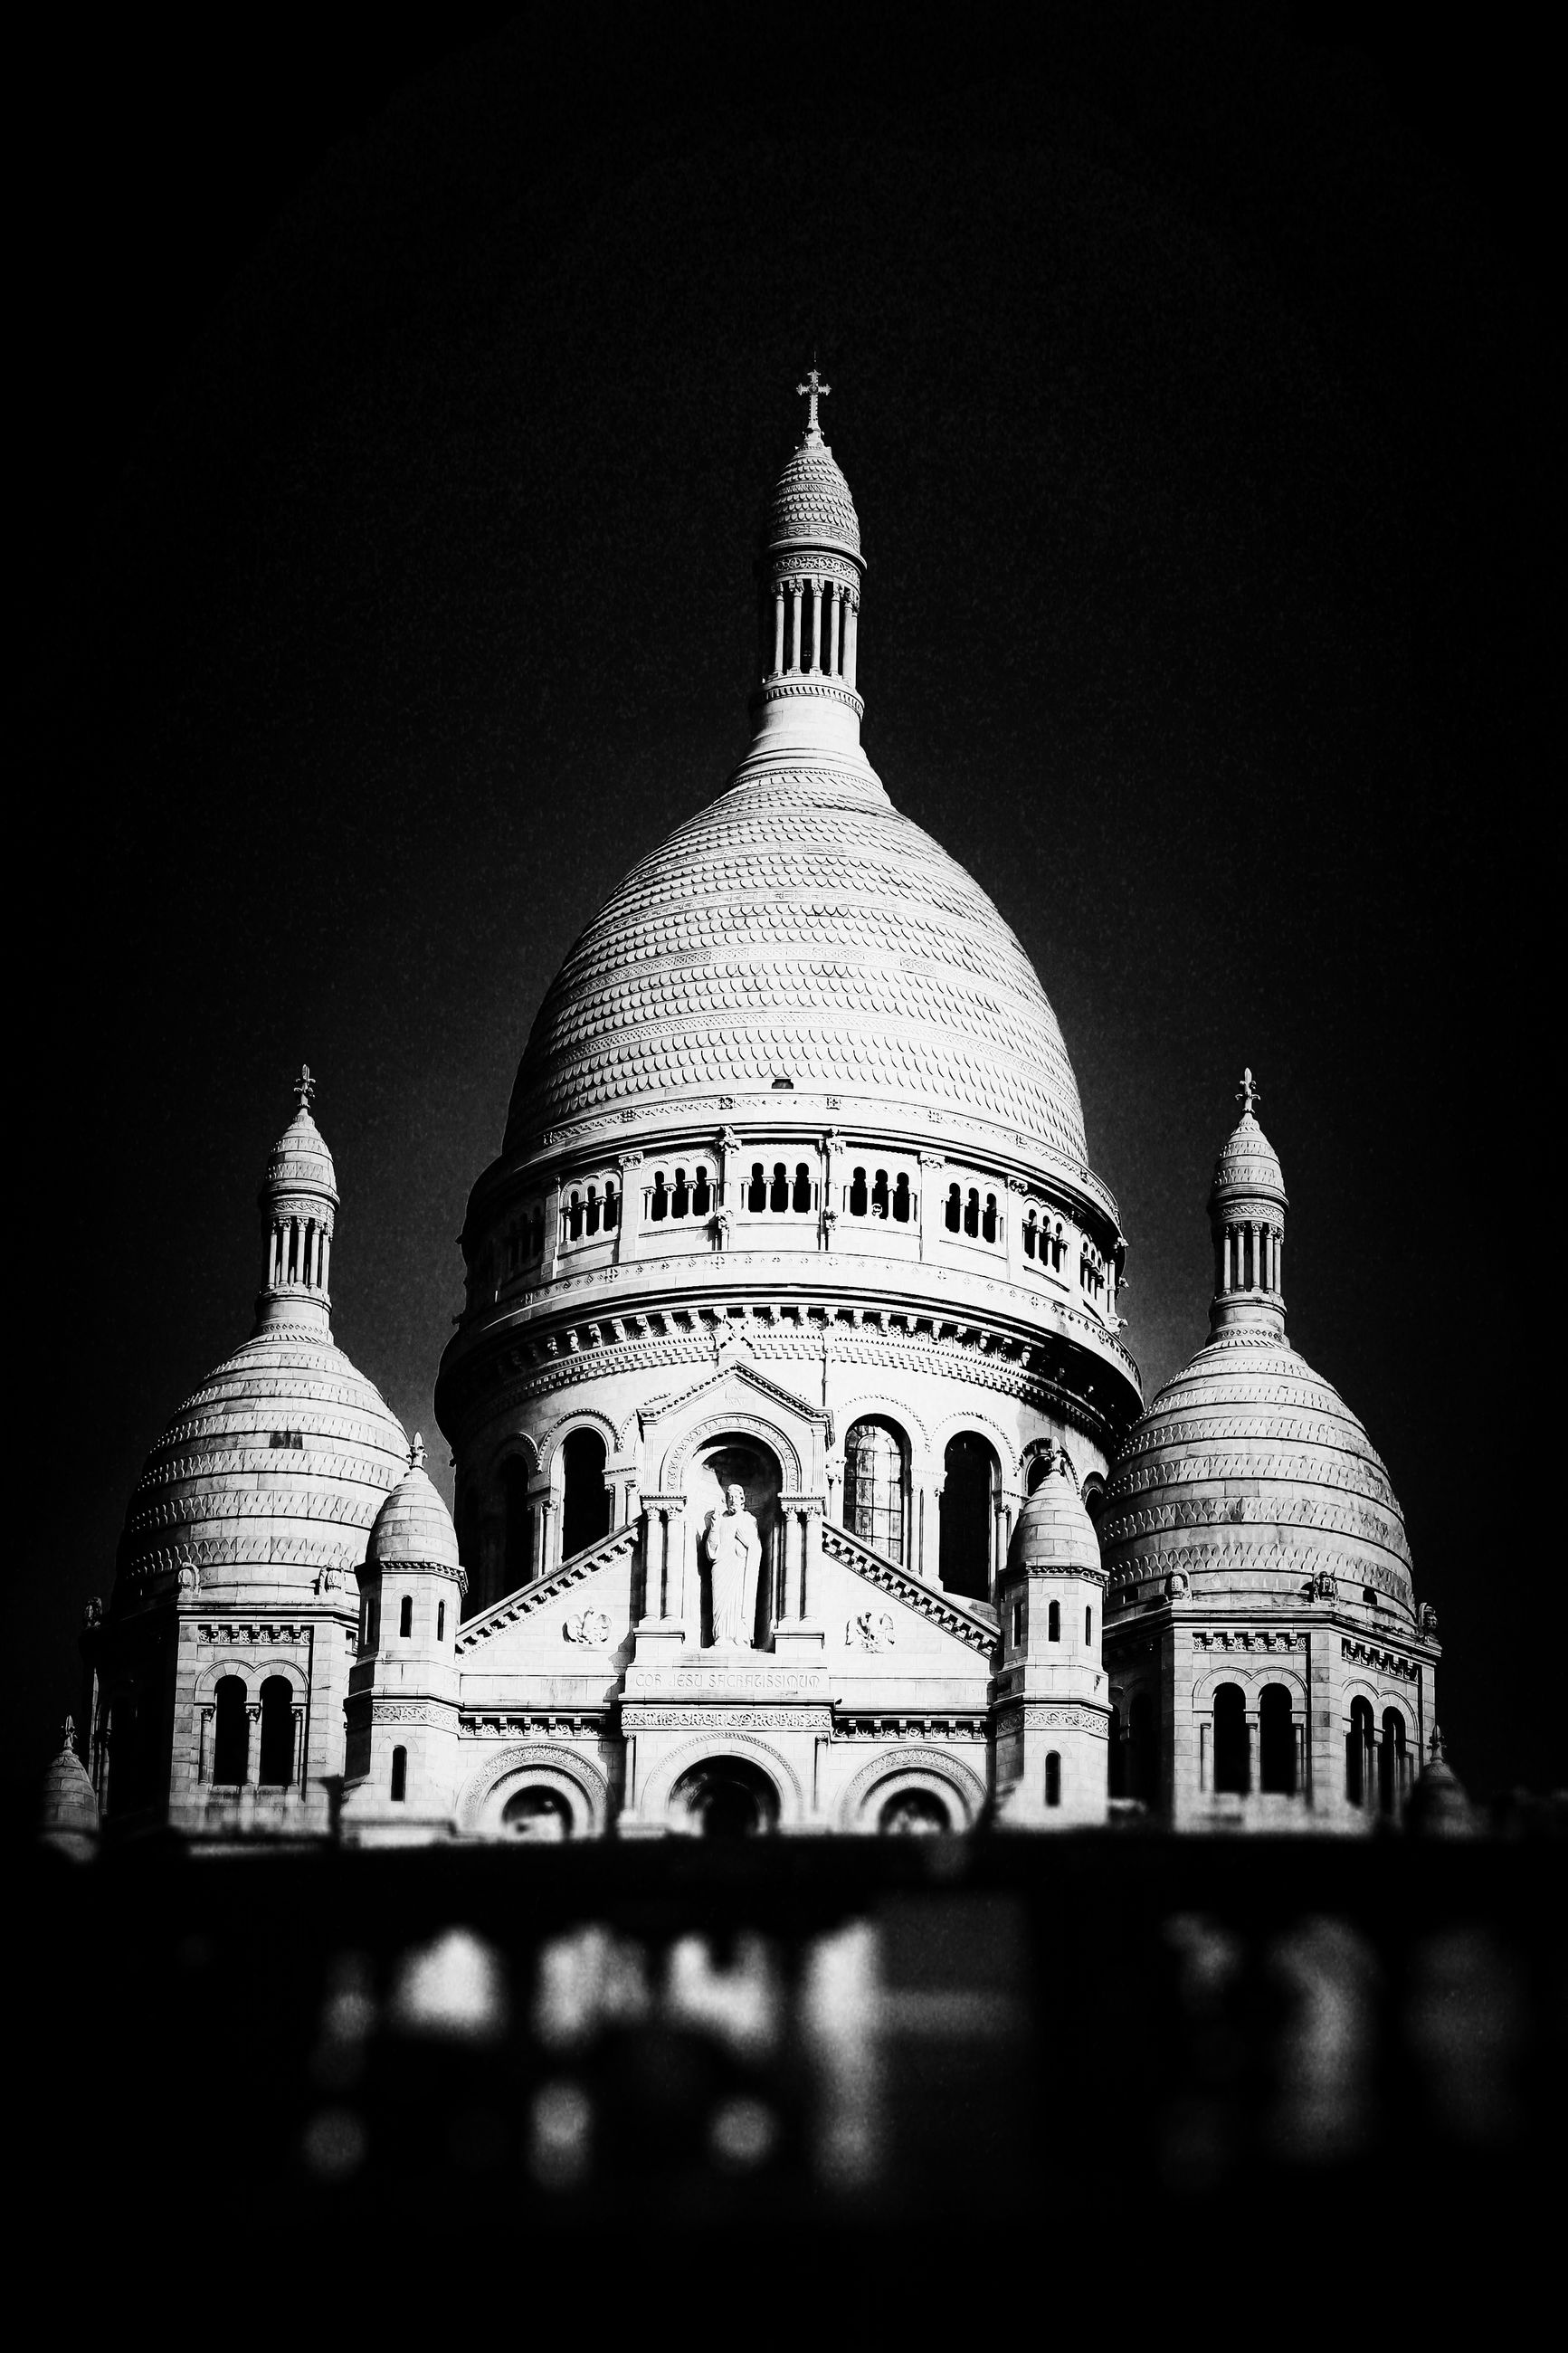 religion, place of worship, spirituality, church, architecture, building exterior, built structure, dome, cathedral, low angle view, famous place, travel destinations, cross, clear sky, travel, facade, sky, tourism